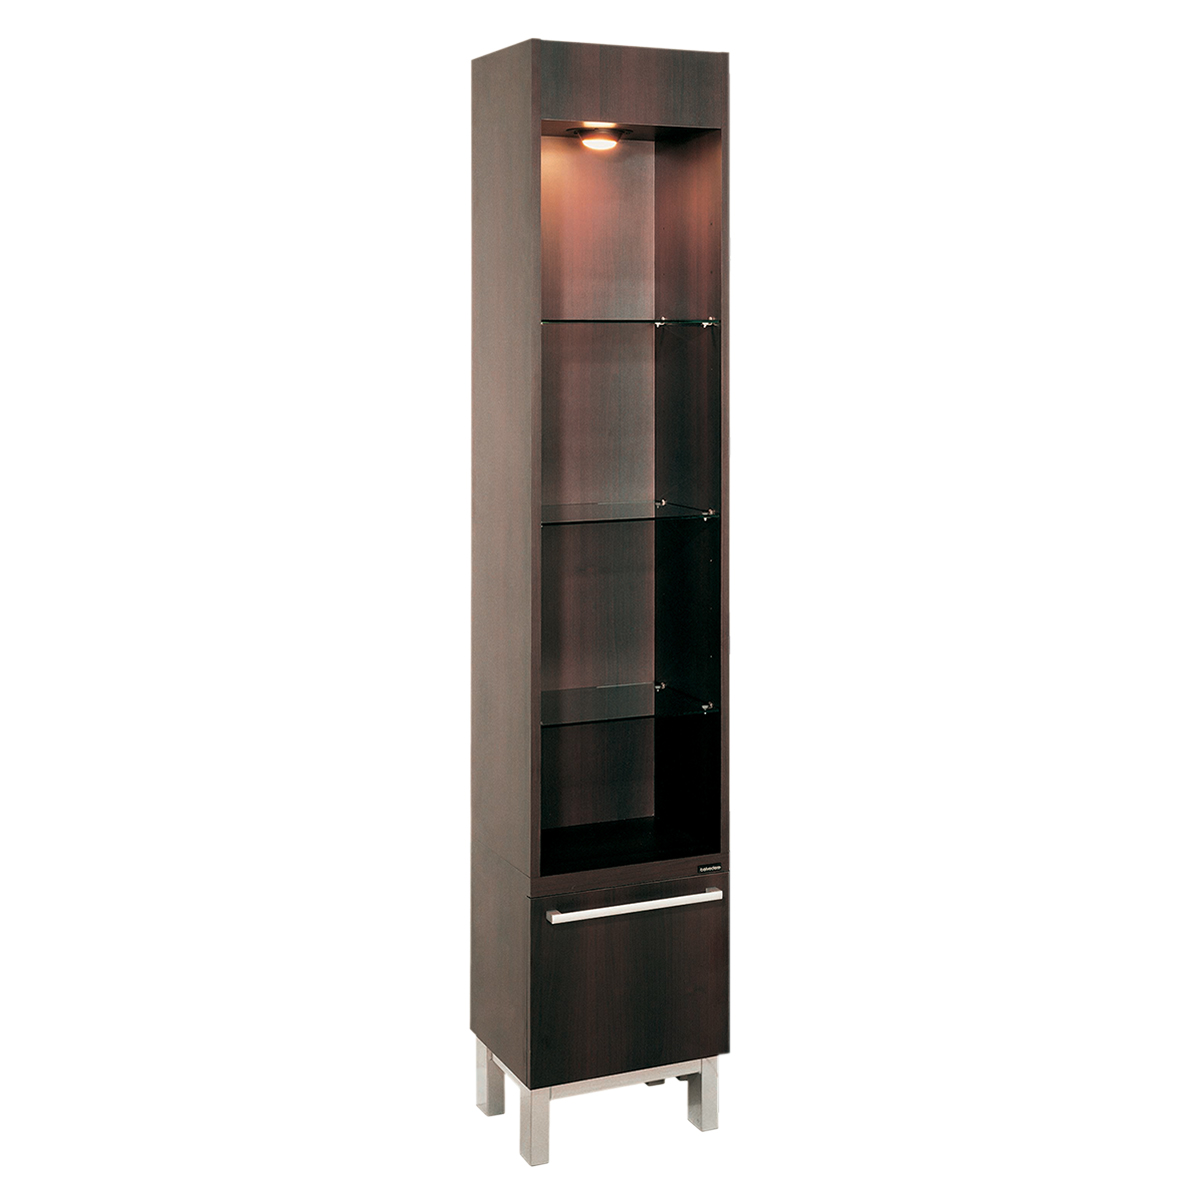 Belvedere KT182/KT183 Kallista Retail Display Cases alternative product image 2